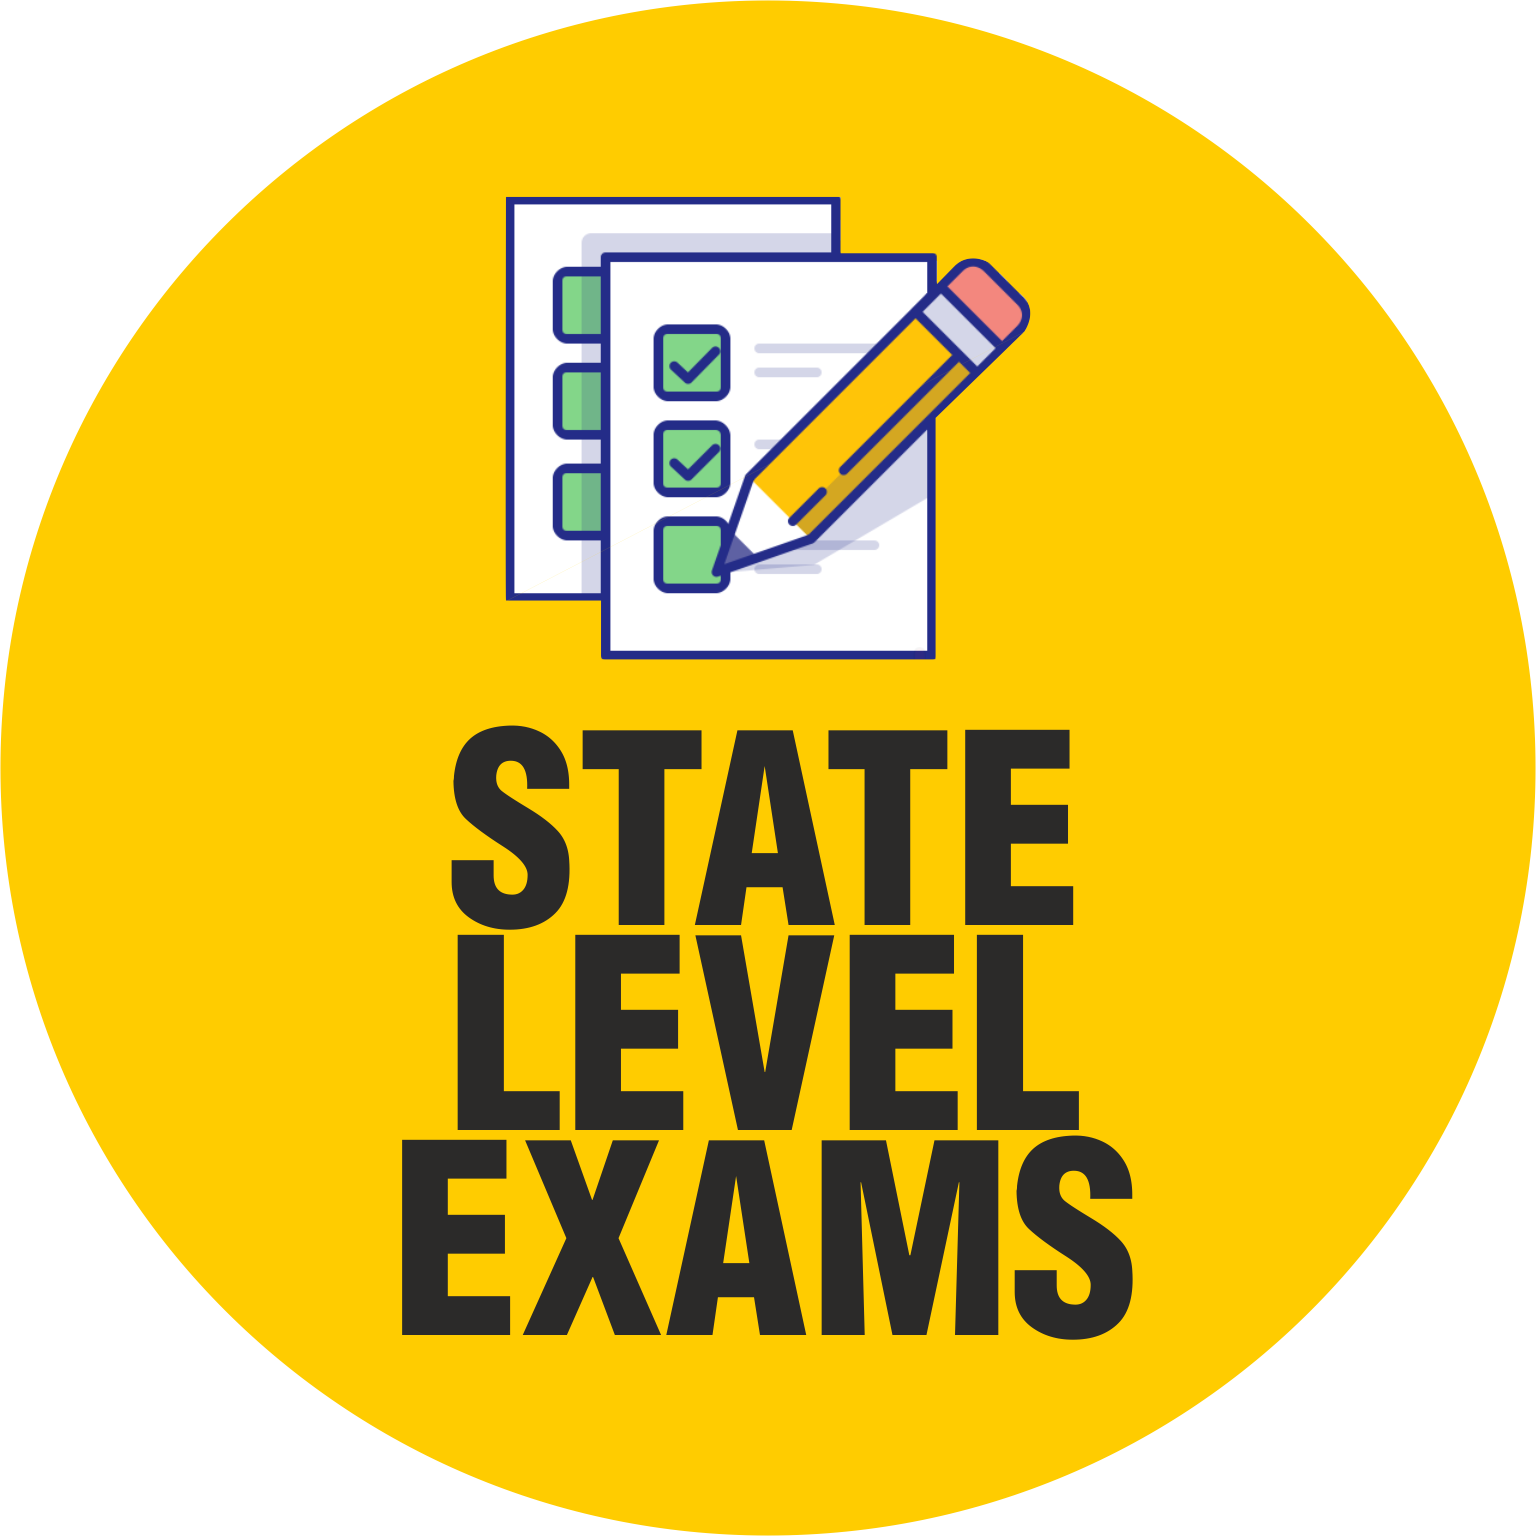 State Exams